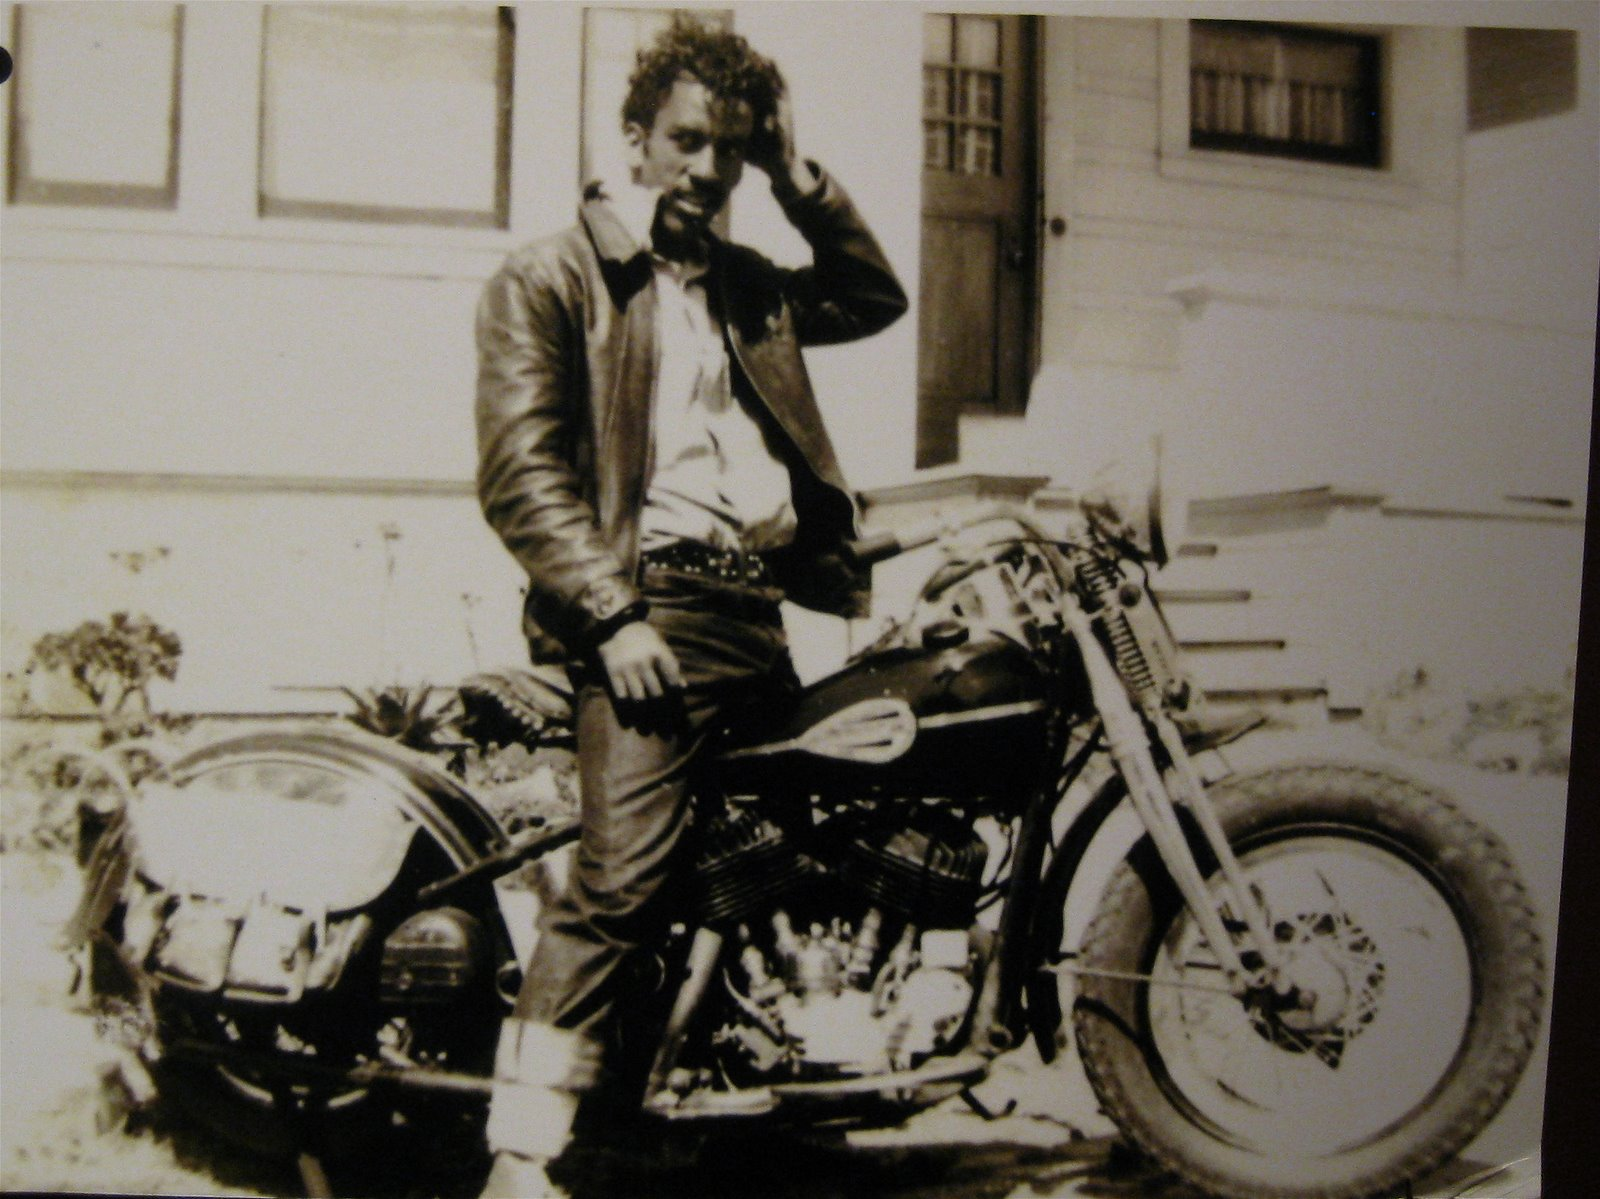 Ebony Female Models On Motorcycles http://theselvedgeyard.wordpress.com/2009/05/02/soul-on-bikes-black-chrome-the-history-of-black-america-motorcycle-culture/